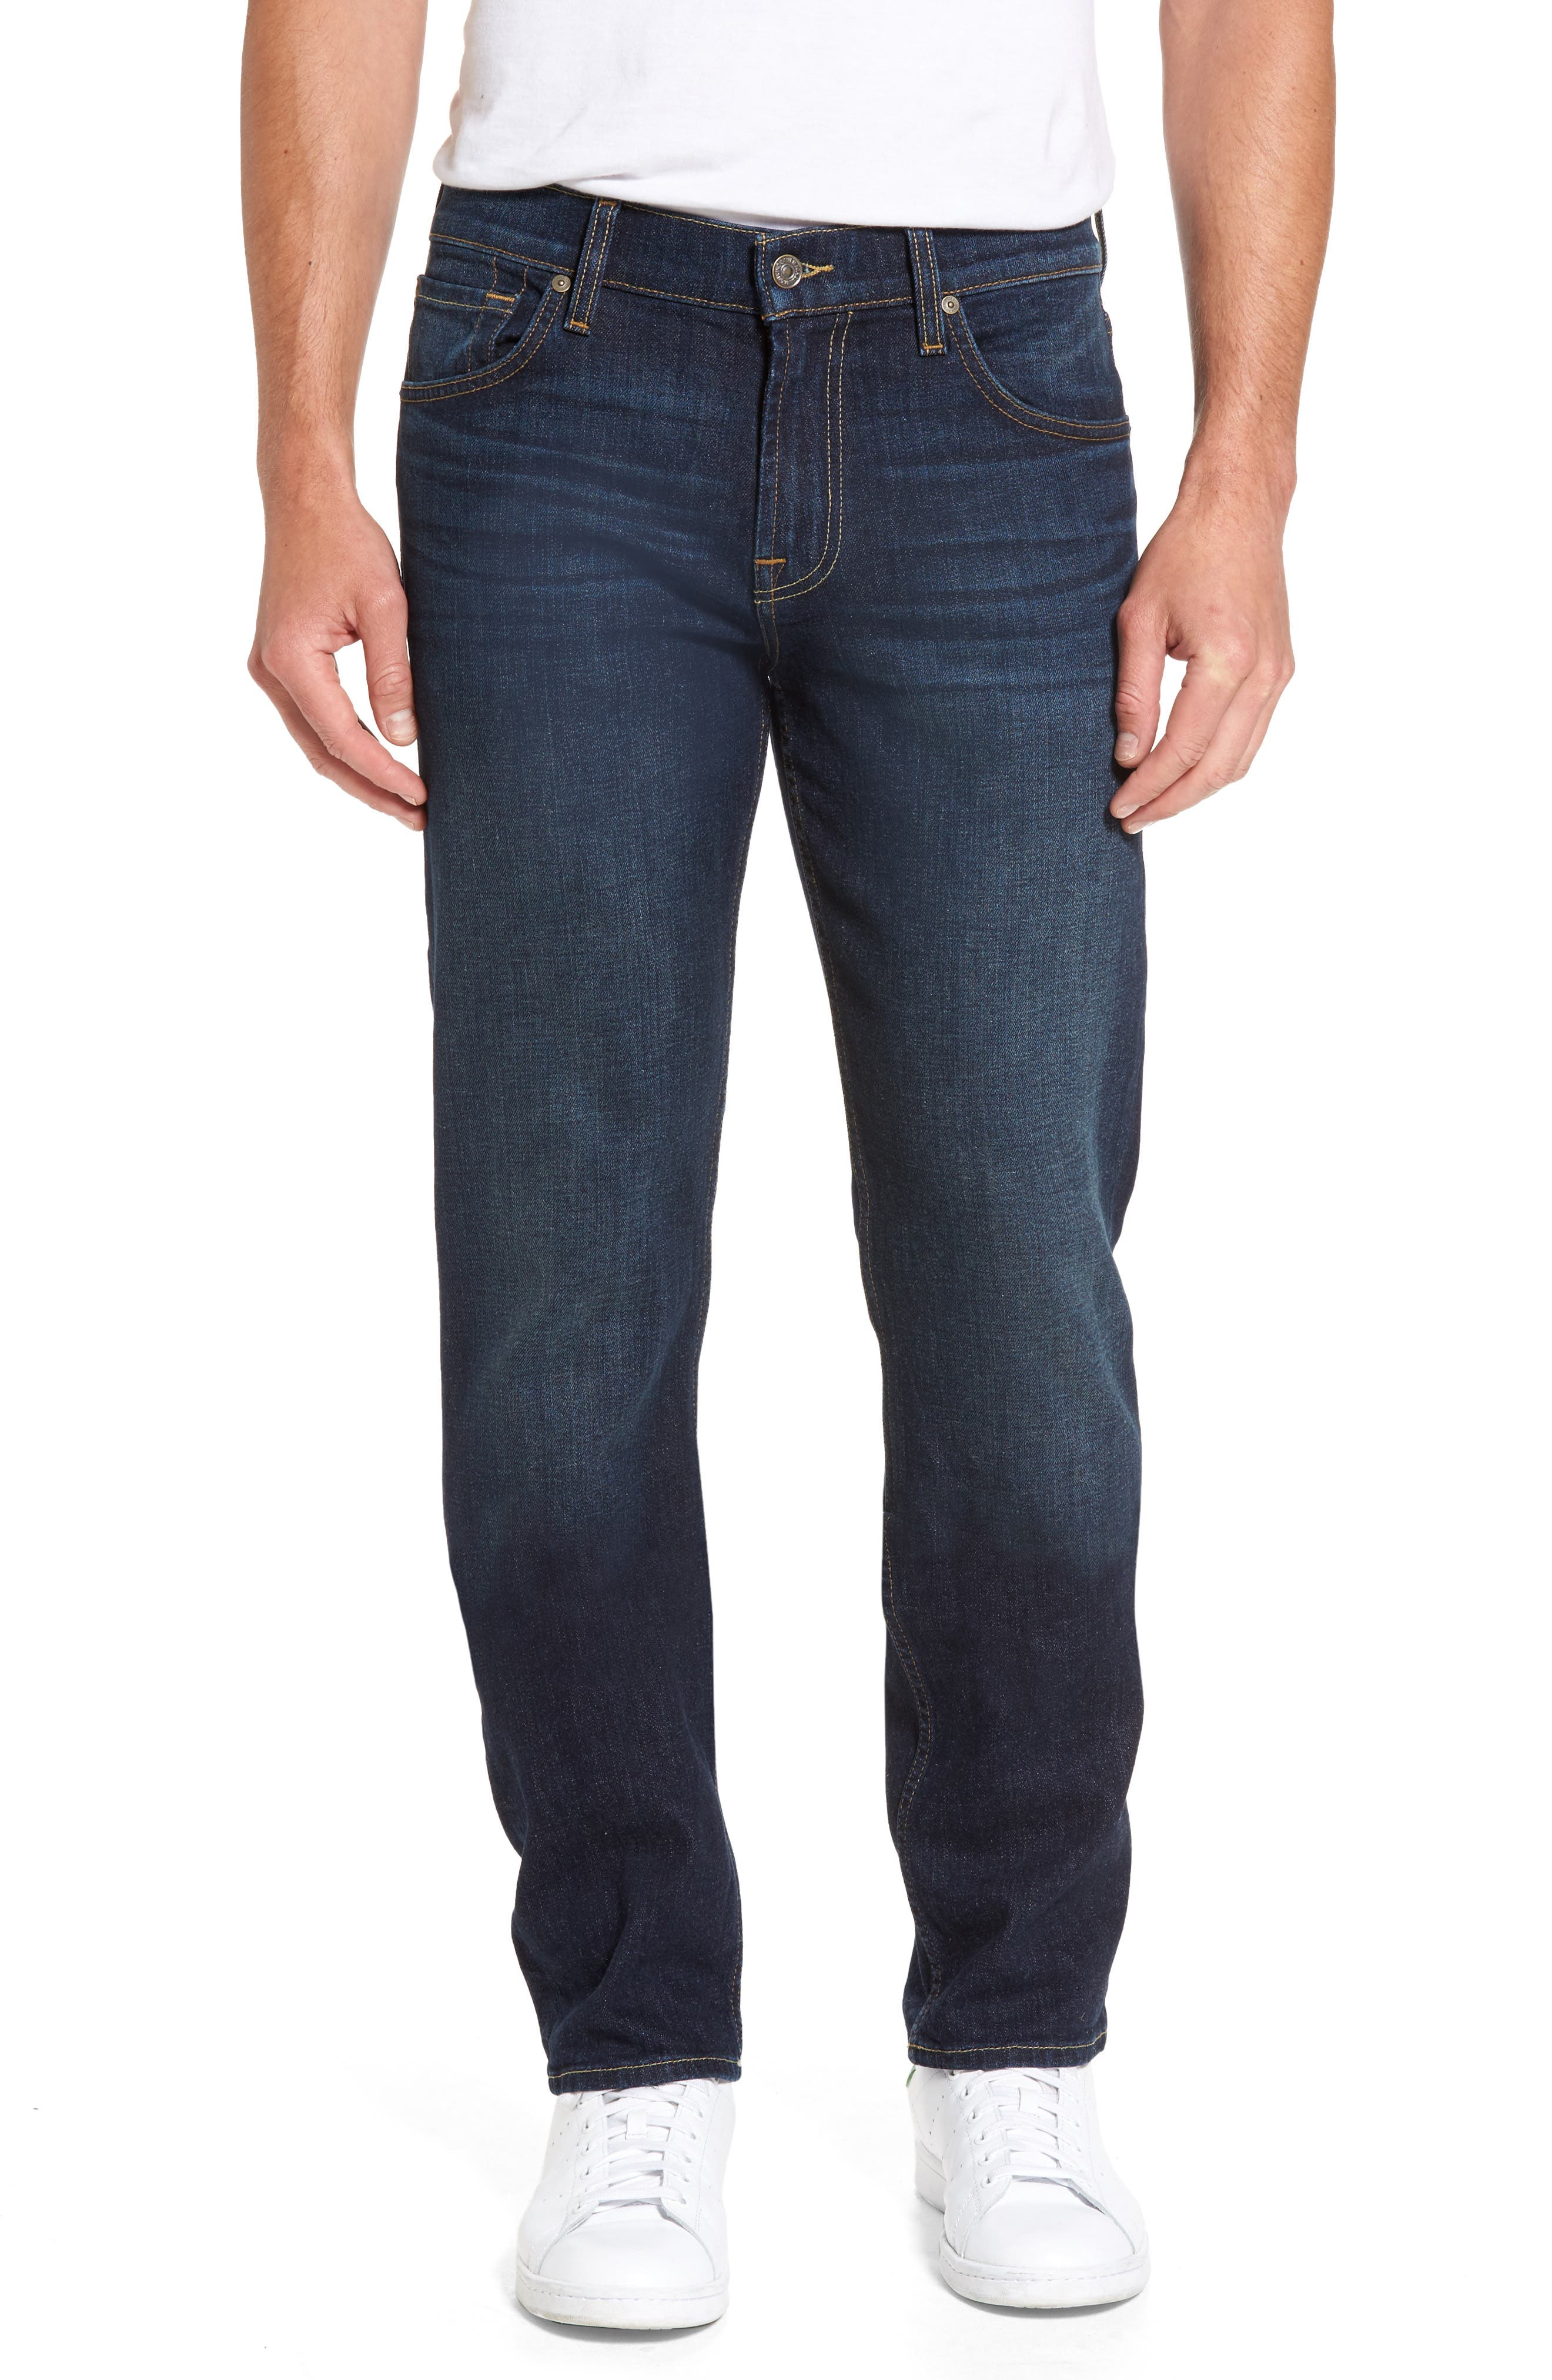 Alternate Image 1 Selected - 7 For All Mankind® The Standard Straight Fit Jeans (Covington)